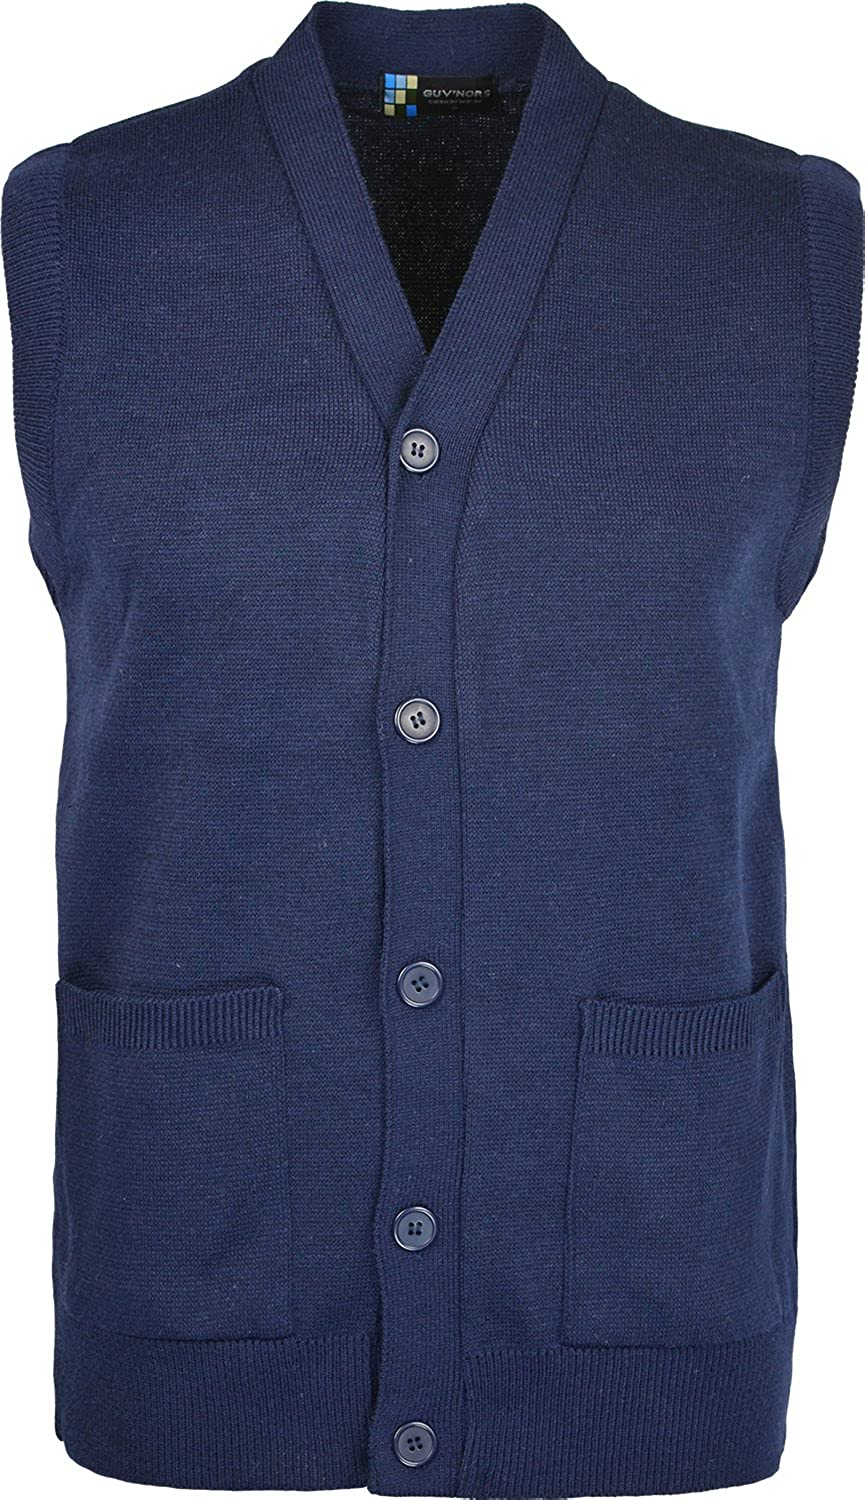 Mens Sleeveless Cardigan Knitted Button Waistcoat Classic Style Cardigans V Neck Plain Coloured